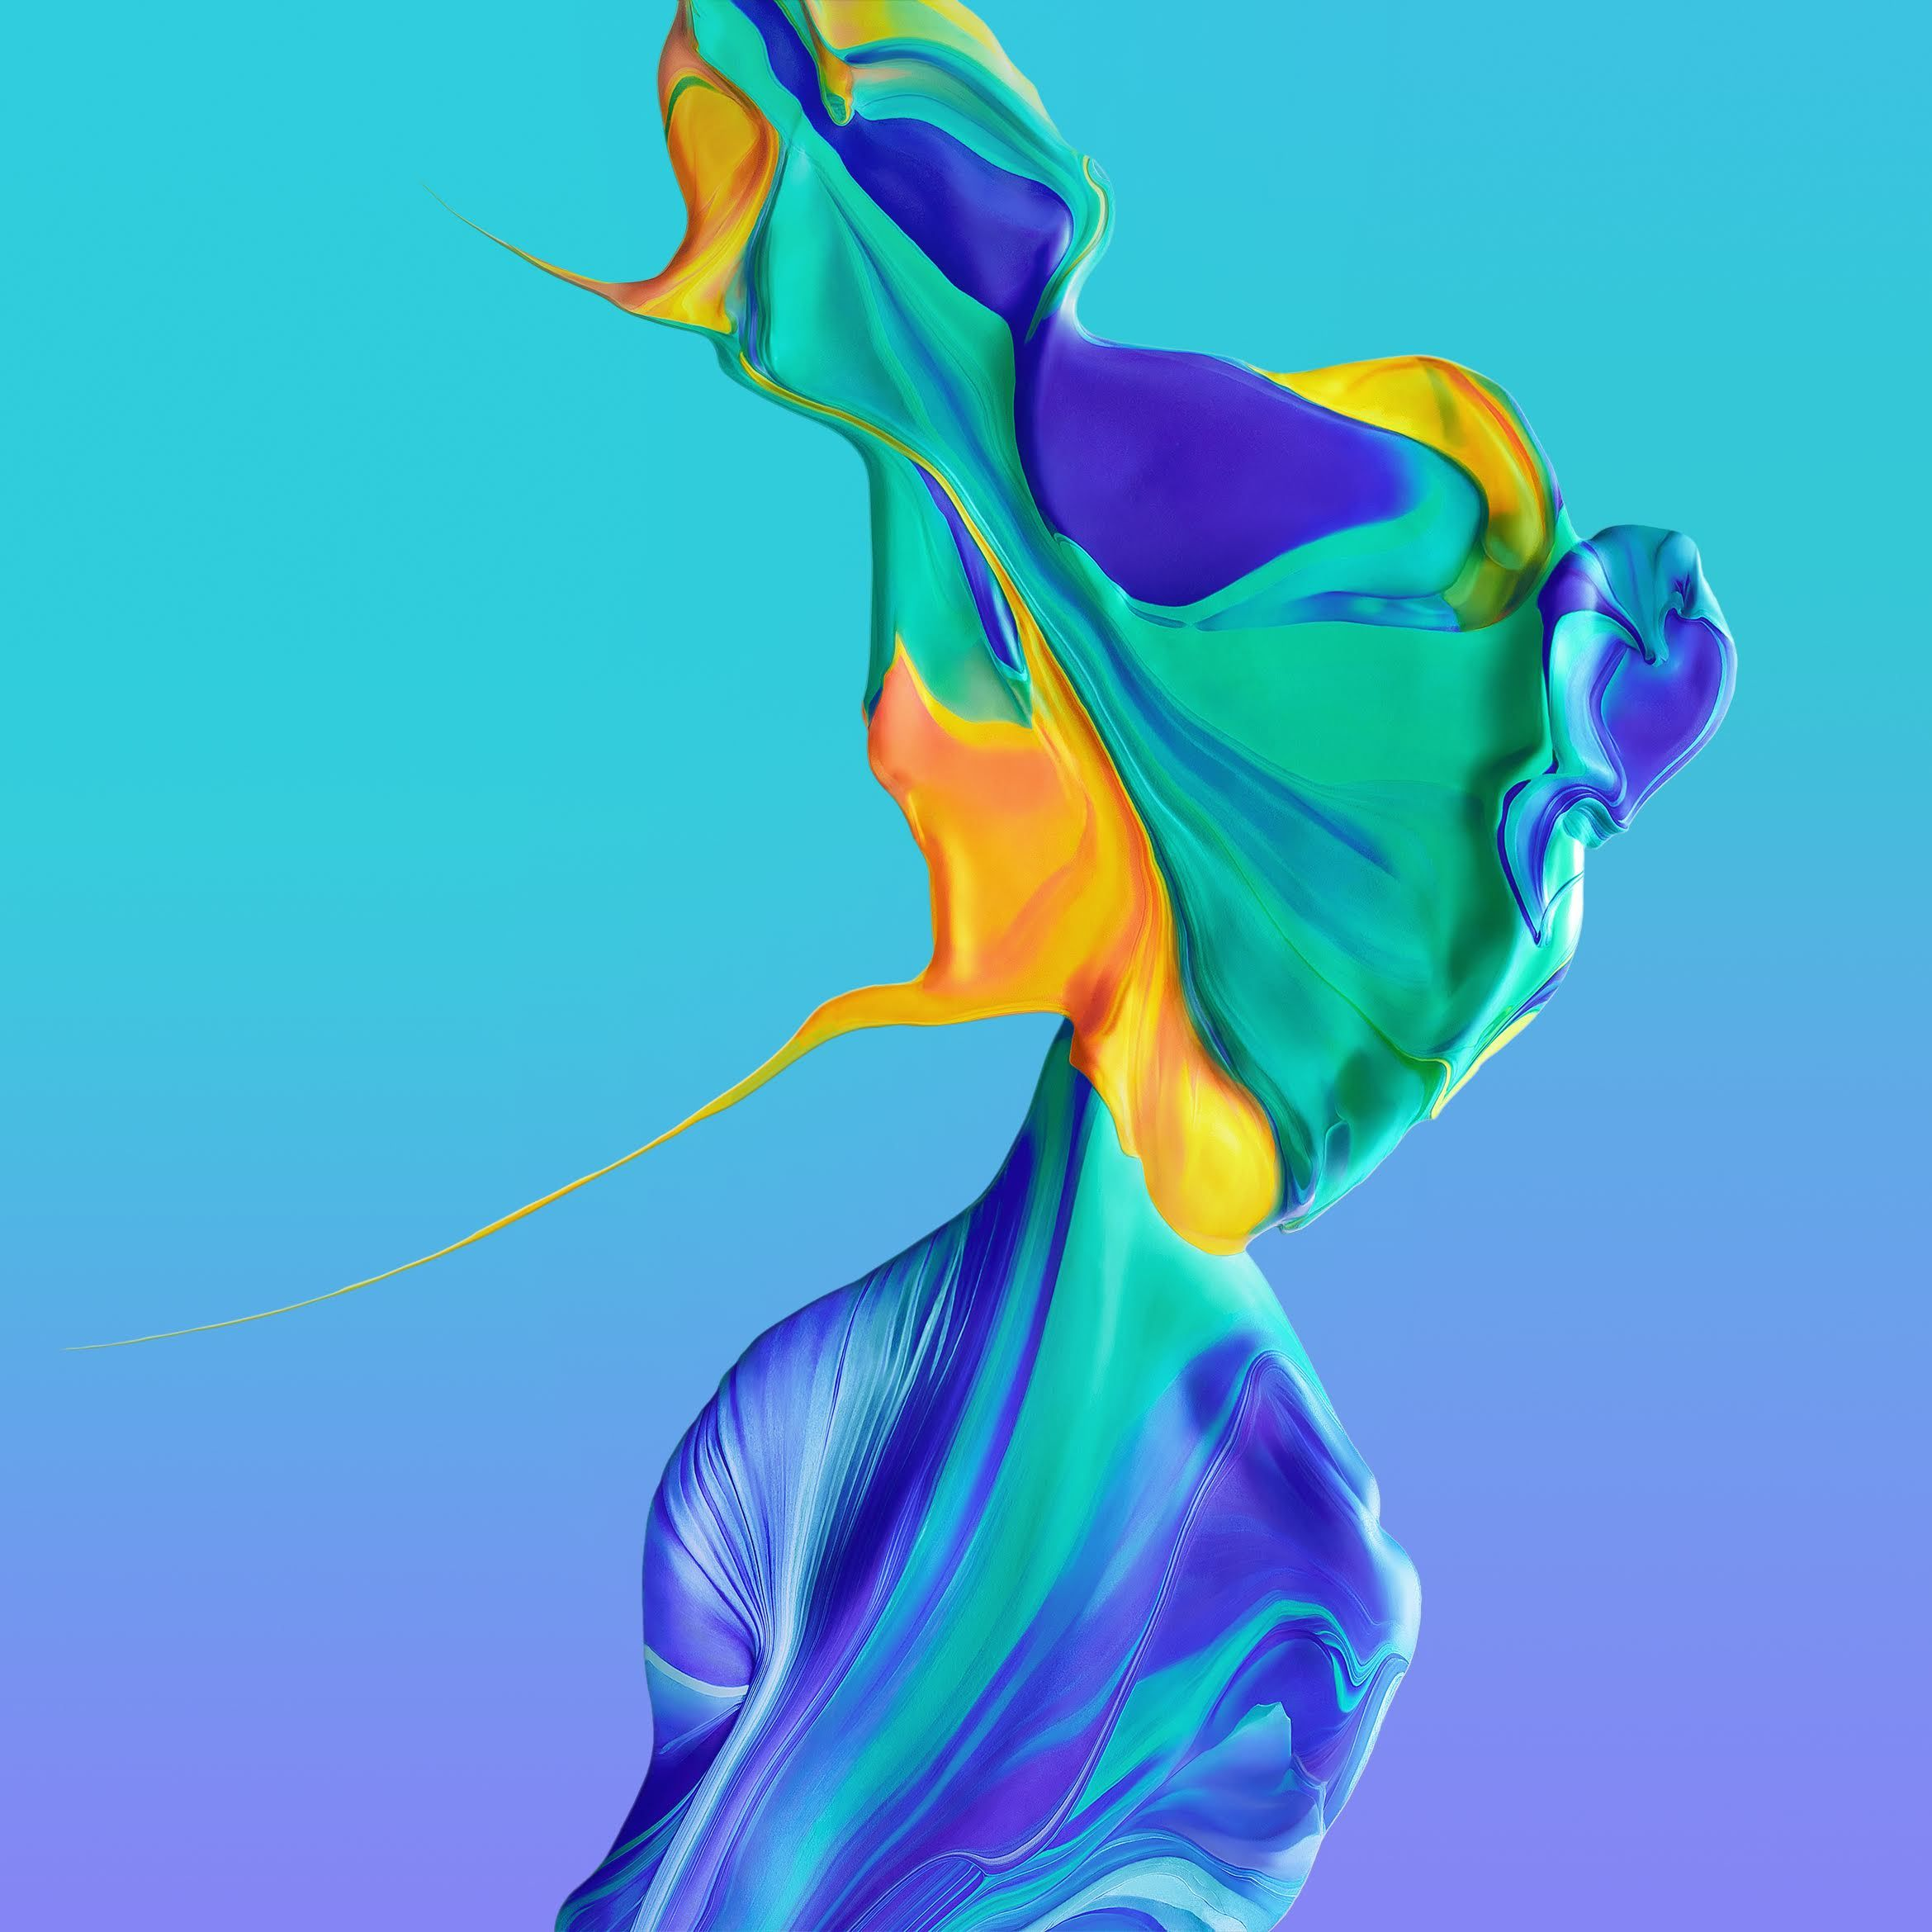 Download Huawei P30 and P30 Pro Official Wallpaper Here